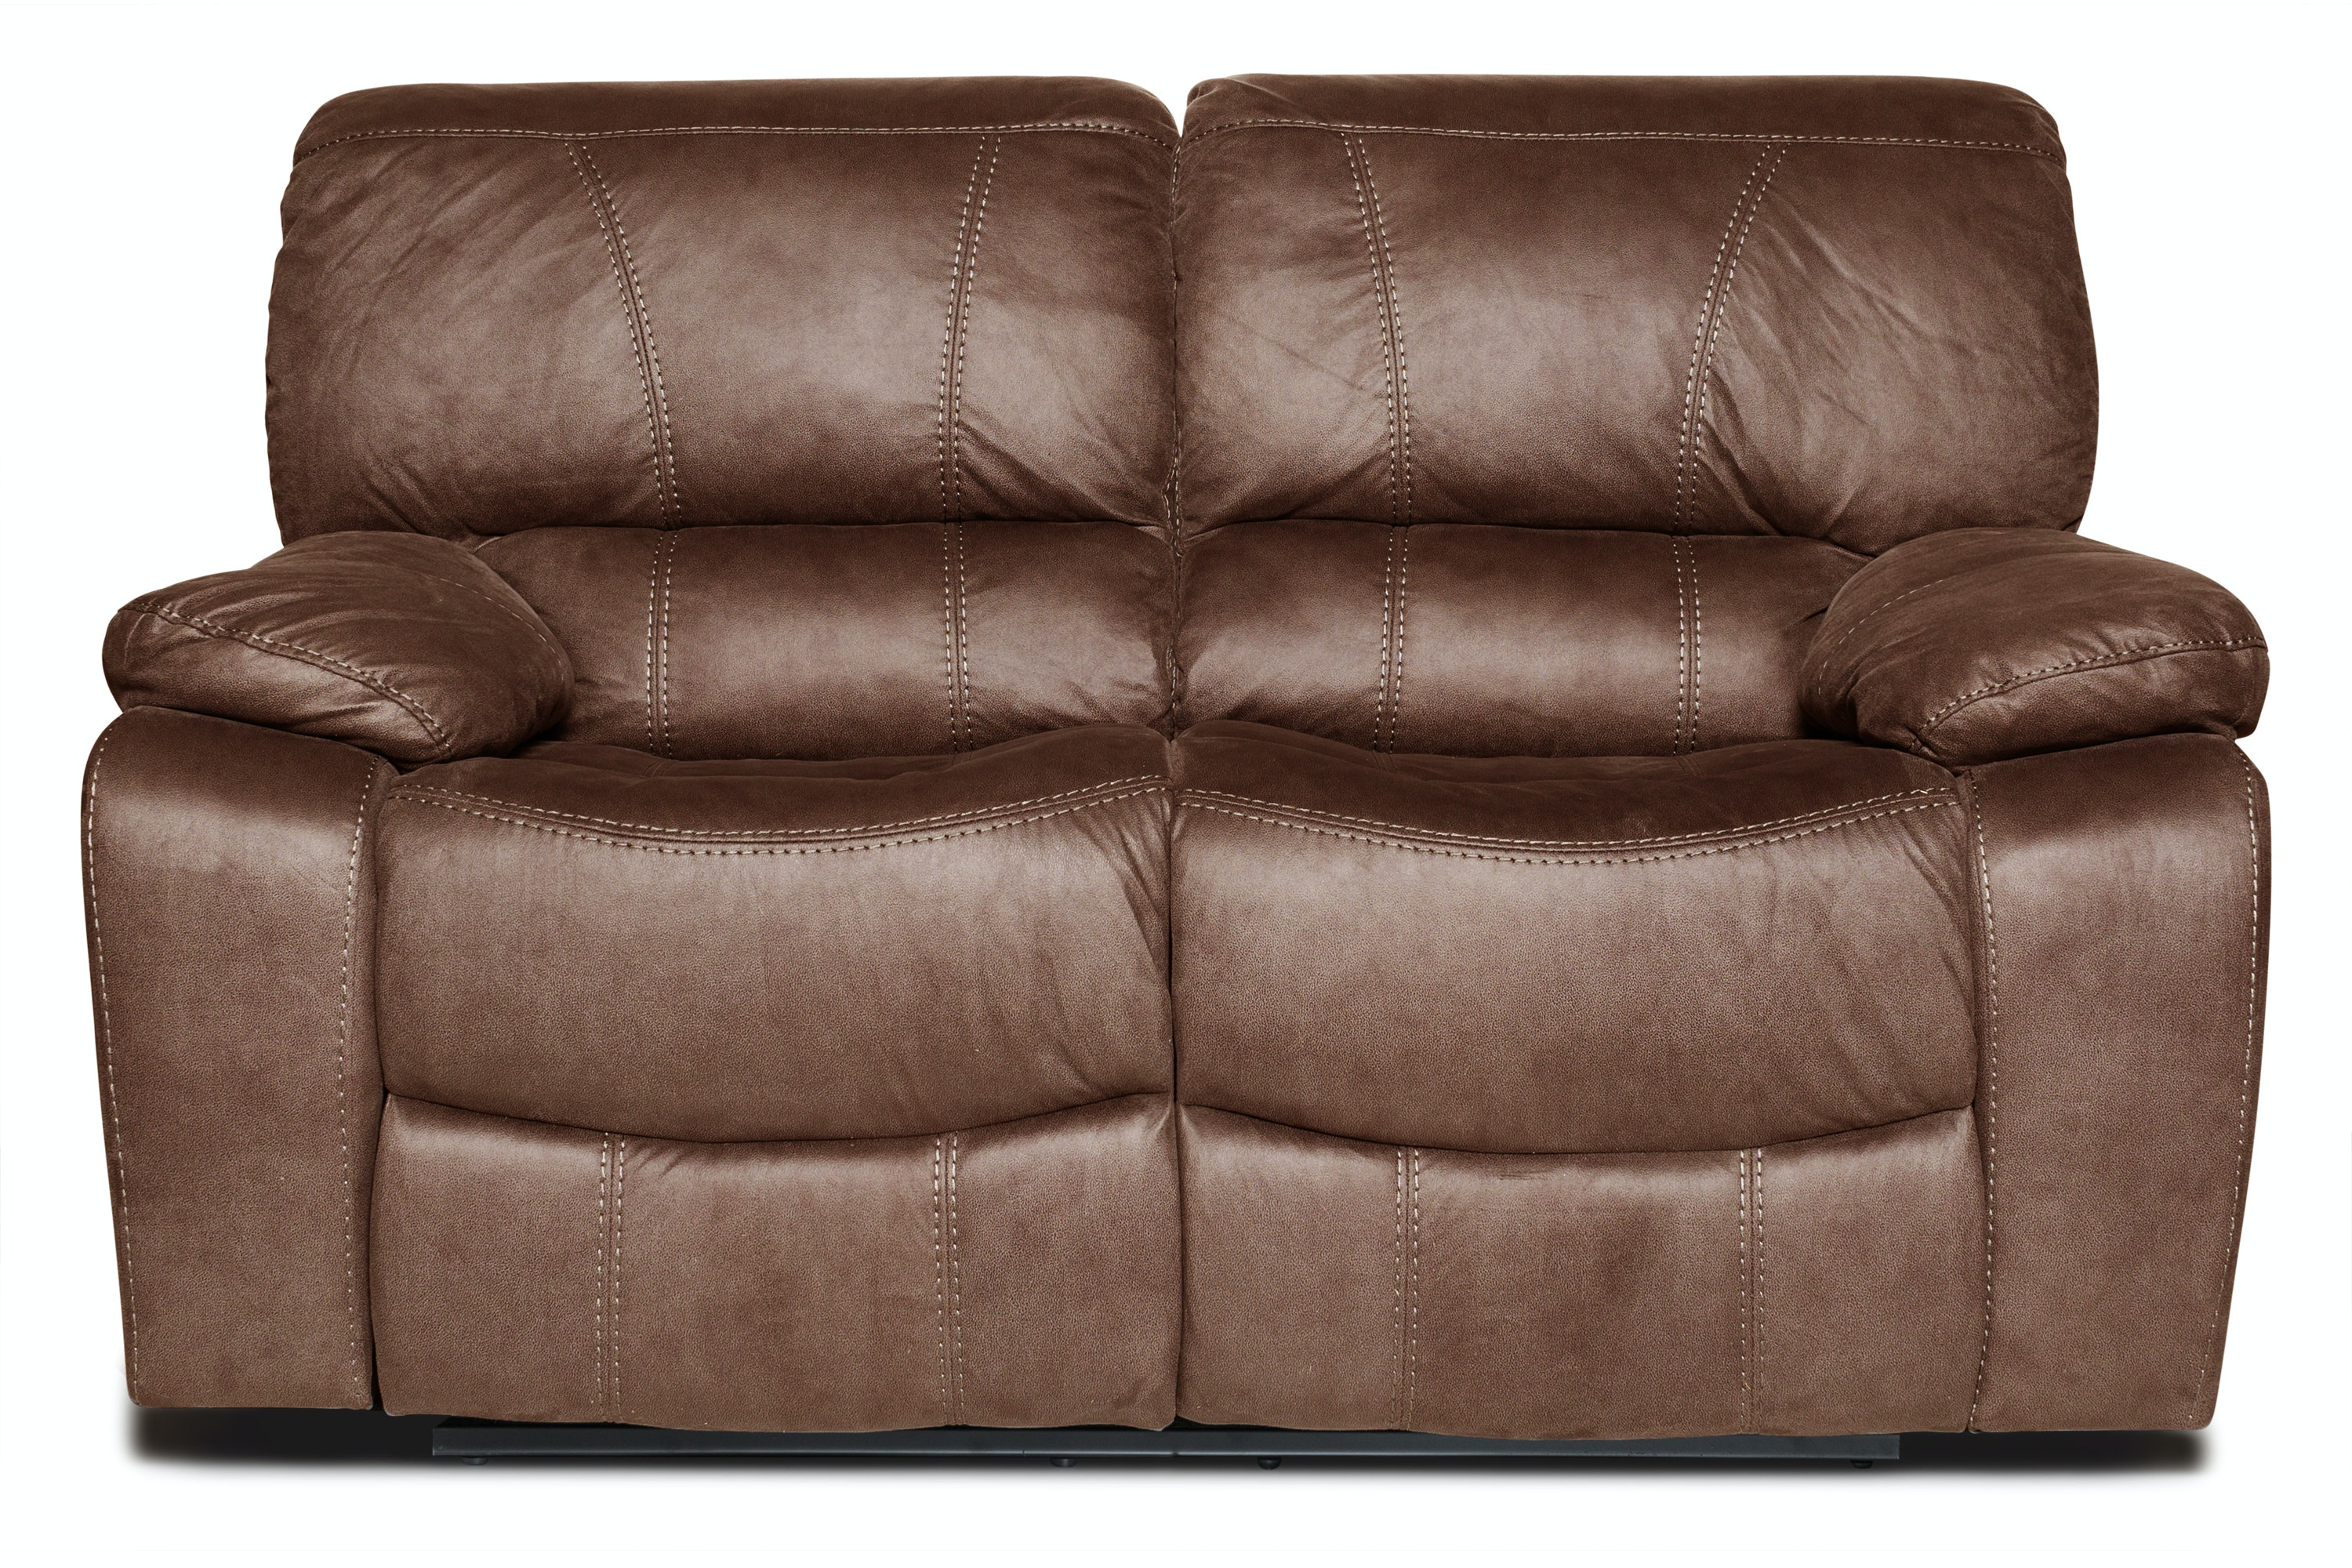 Cooper 2 Seater Recliner Sofa Harvey Norman Ireland